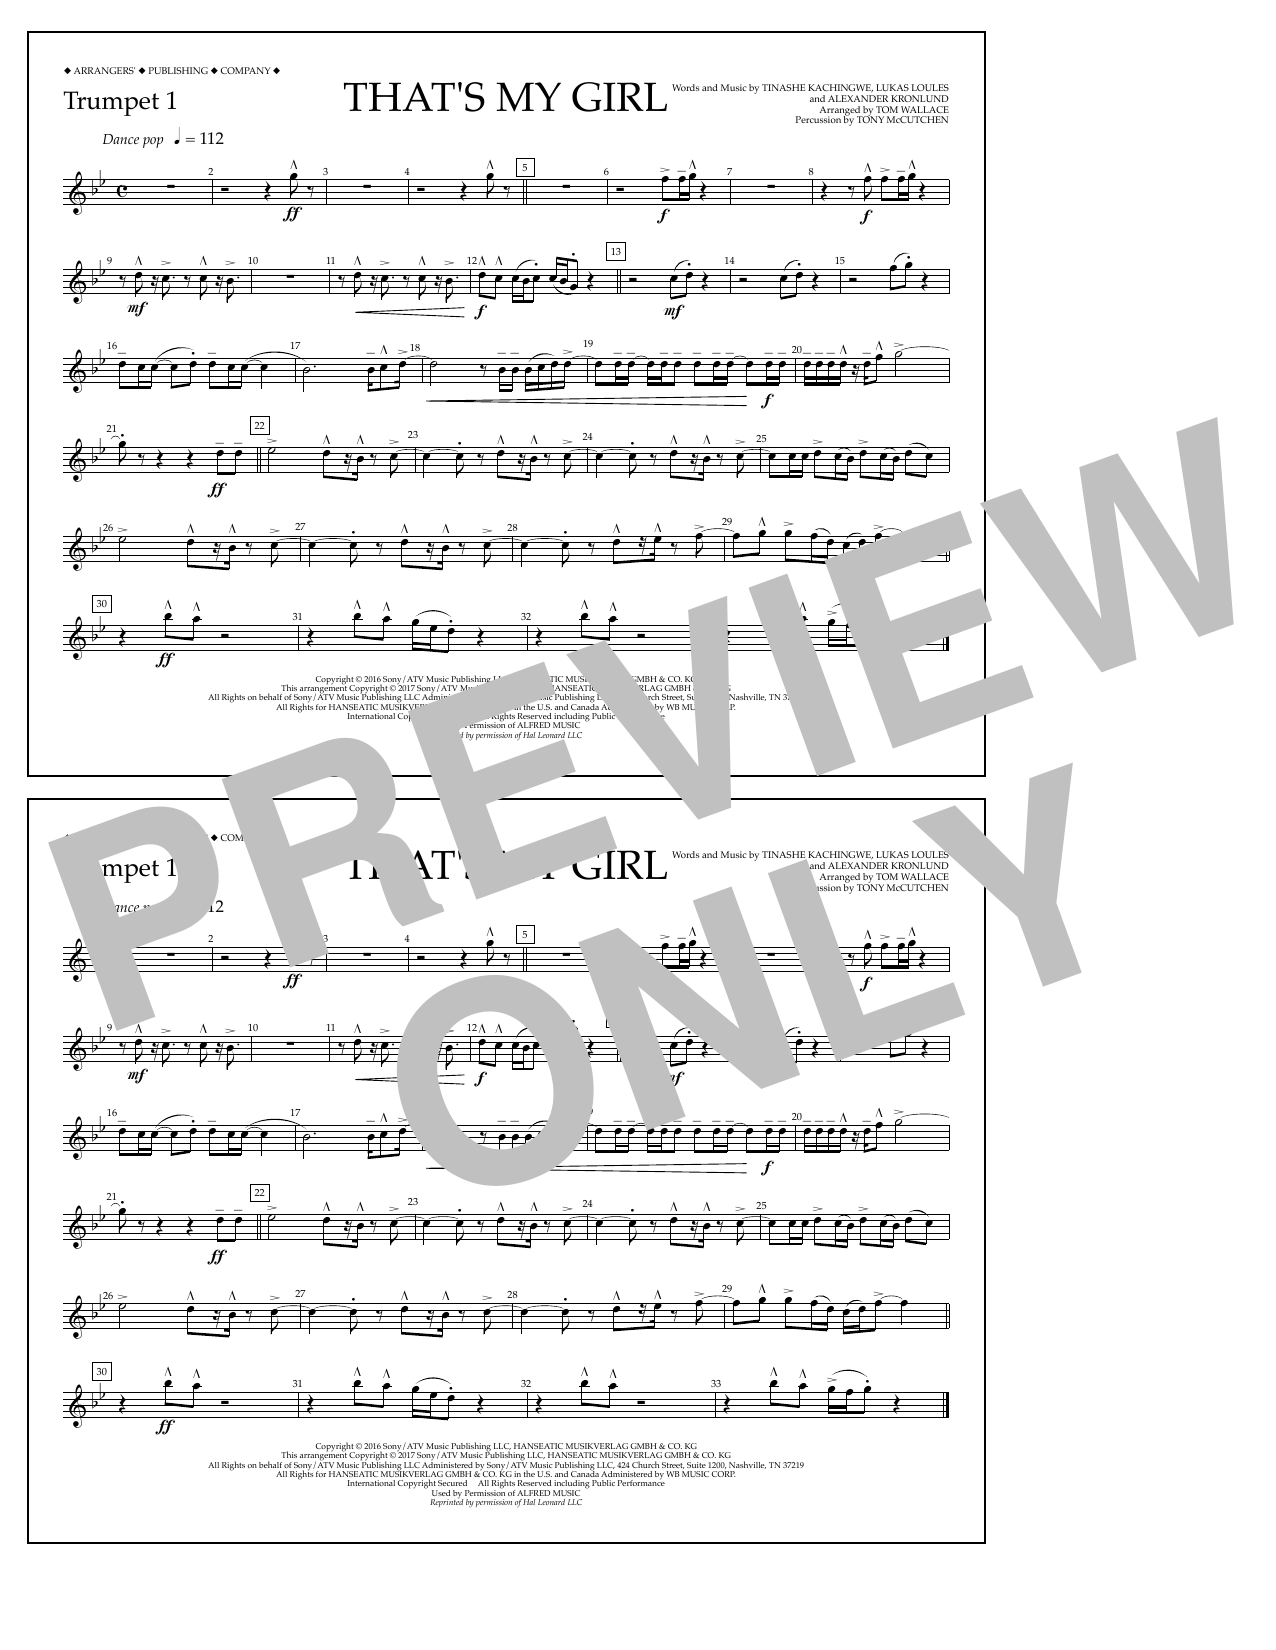 That's My Girl - Trumpet 1 Sheet Music